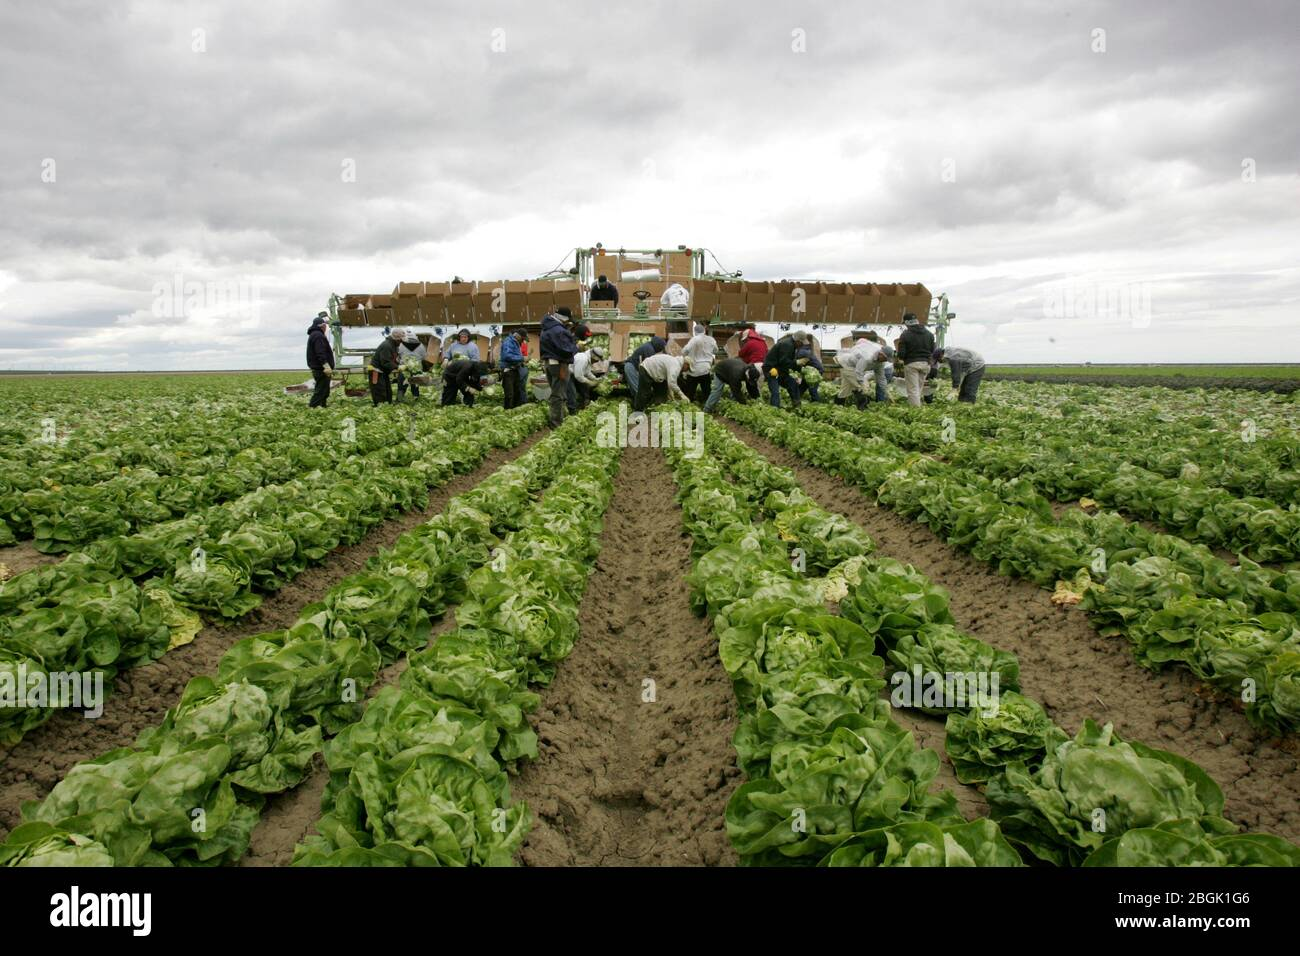 April 11, 2006, Huron, California, USA: Just outside of Huron, the mainly undocumented migrant workforce takes the back-breaking work of lettuce picking, which earns on average six to eight dollars an hour. California's Central Valley offers at least seasonal agriculture jobs to 600,000 to 700,000 workers each year. Huron, the 'Heart of the Valley, ' is a city of 5,900 in western Fresno county with six bars, five gangs and a famous drug alley. Twice a year, when the lettuce is harvested, the population doubles. Gang members know that workers without bank accounts carry large amounts of cash, a Stock Photo